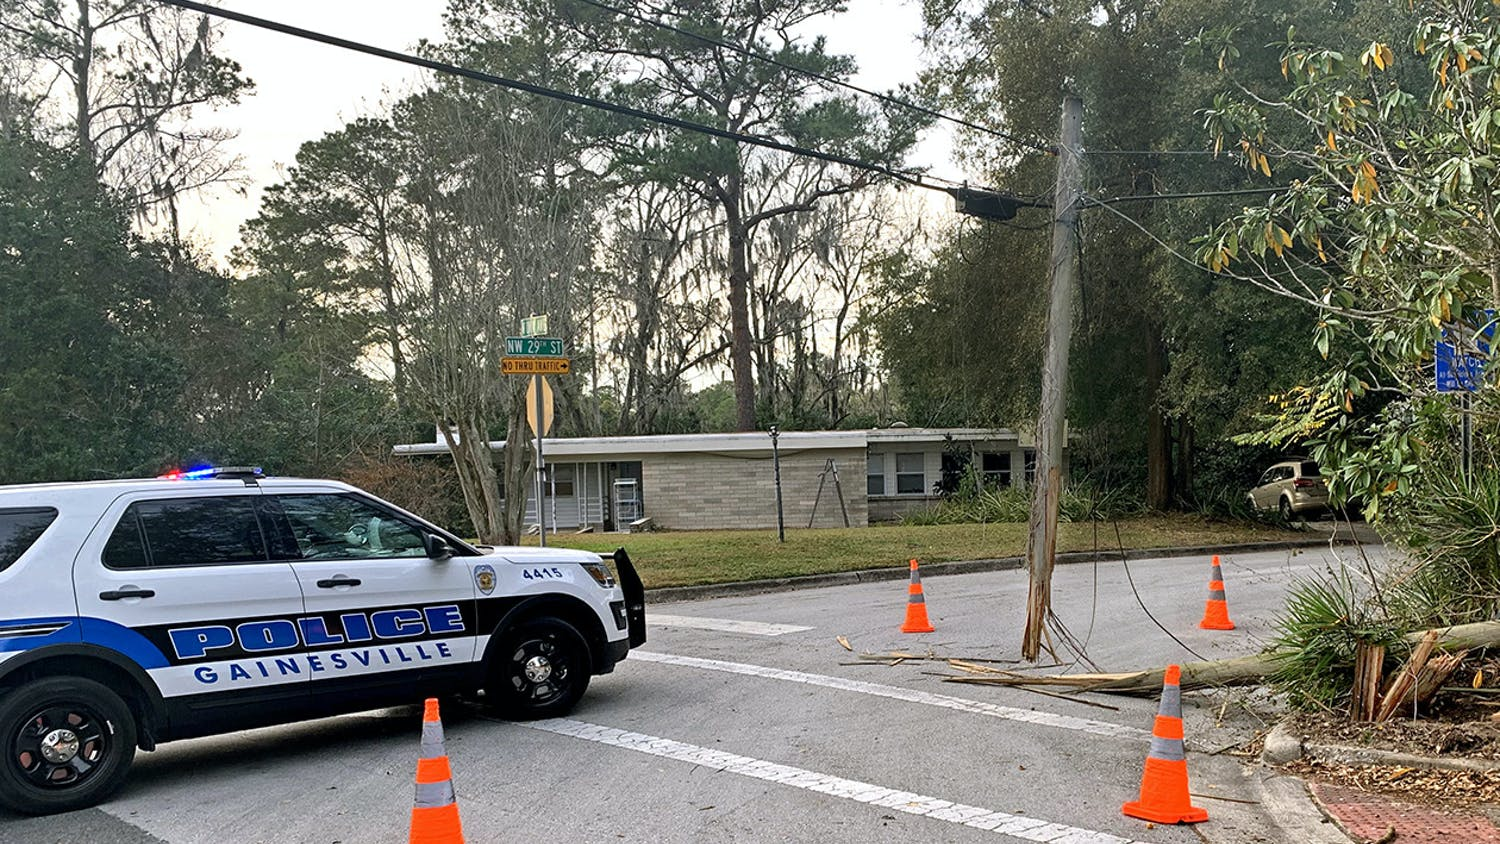 An electrical pole was damaged after a car crash on the corner of Northwest 29th Street and University Avenue on Monday, Jan. 25, 2021. This crash occurred nine days after the car crash on West University Avenue that killed UF student Sophia Lambert and left five others hospitalized.